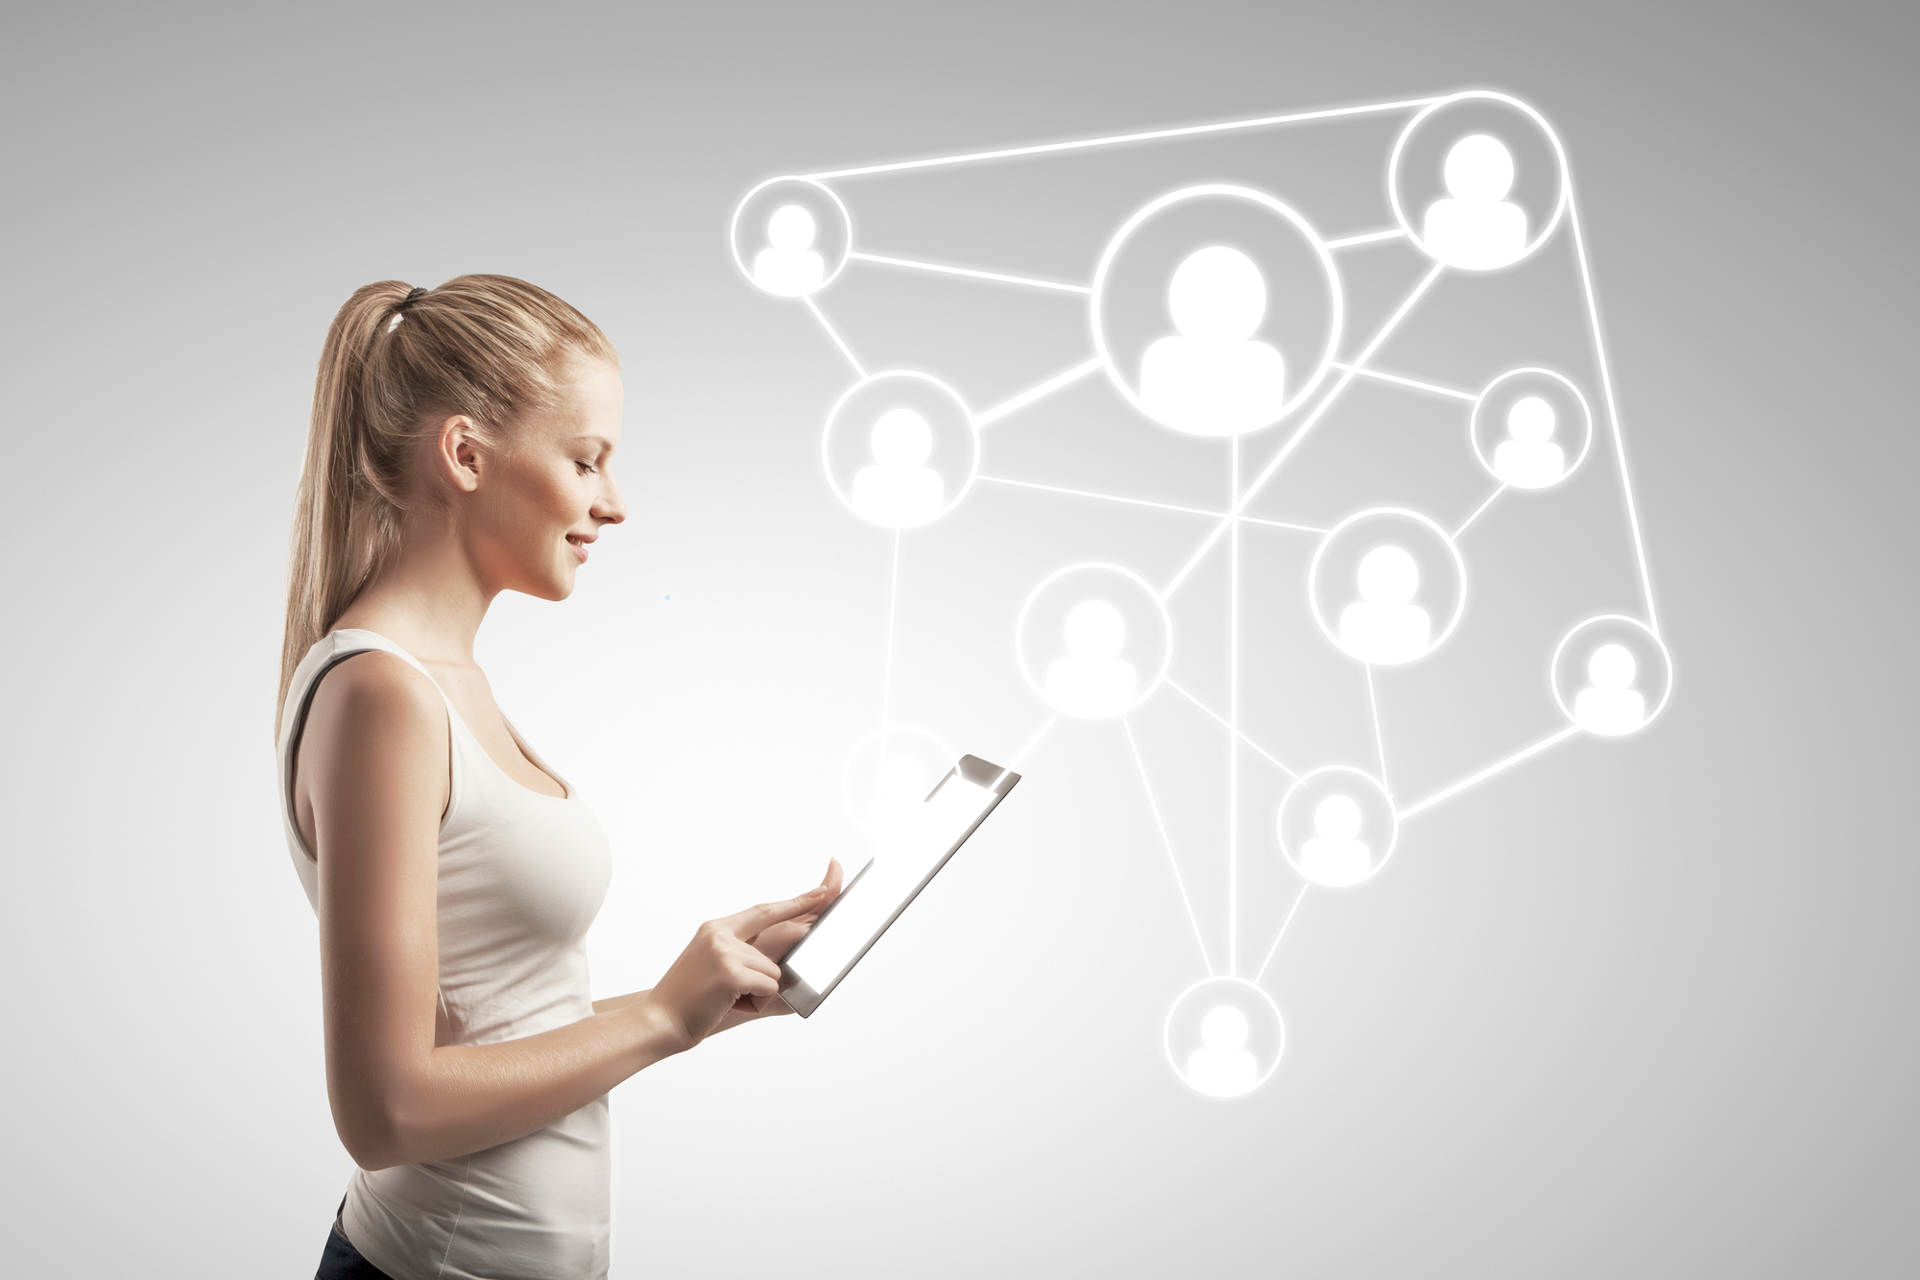 Networked Job Management: What it Means for the Wo